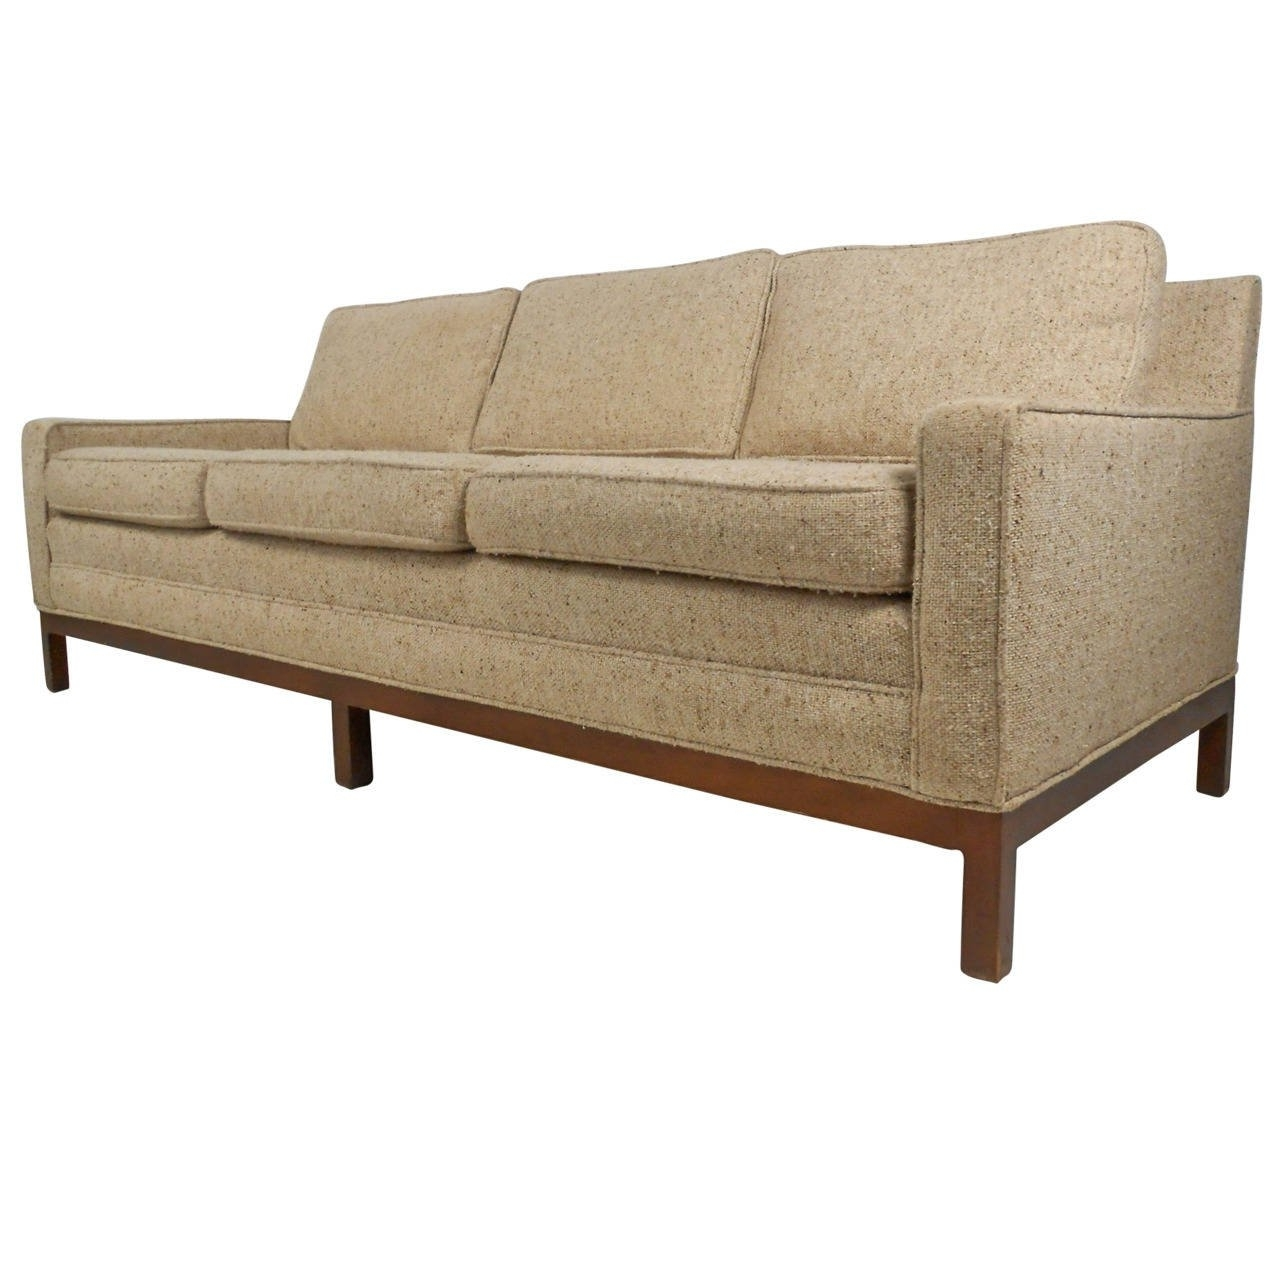 Vintage Modern Sofa After Florence Knoll For Sale At 1Stdibs With Regard To Trendy Florence Large Sofas (View 15 of 15)